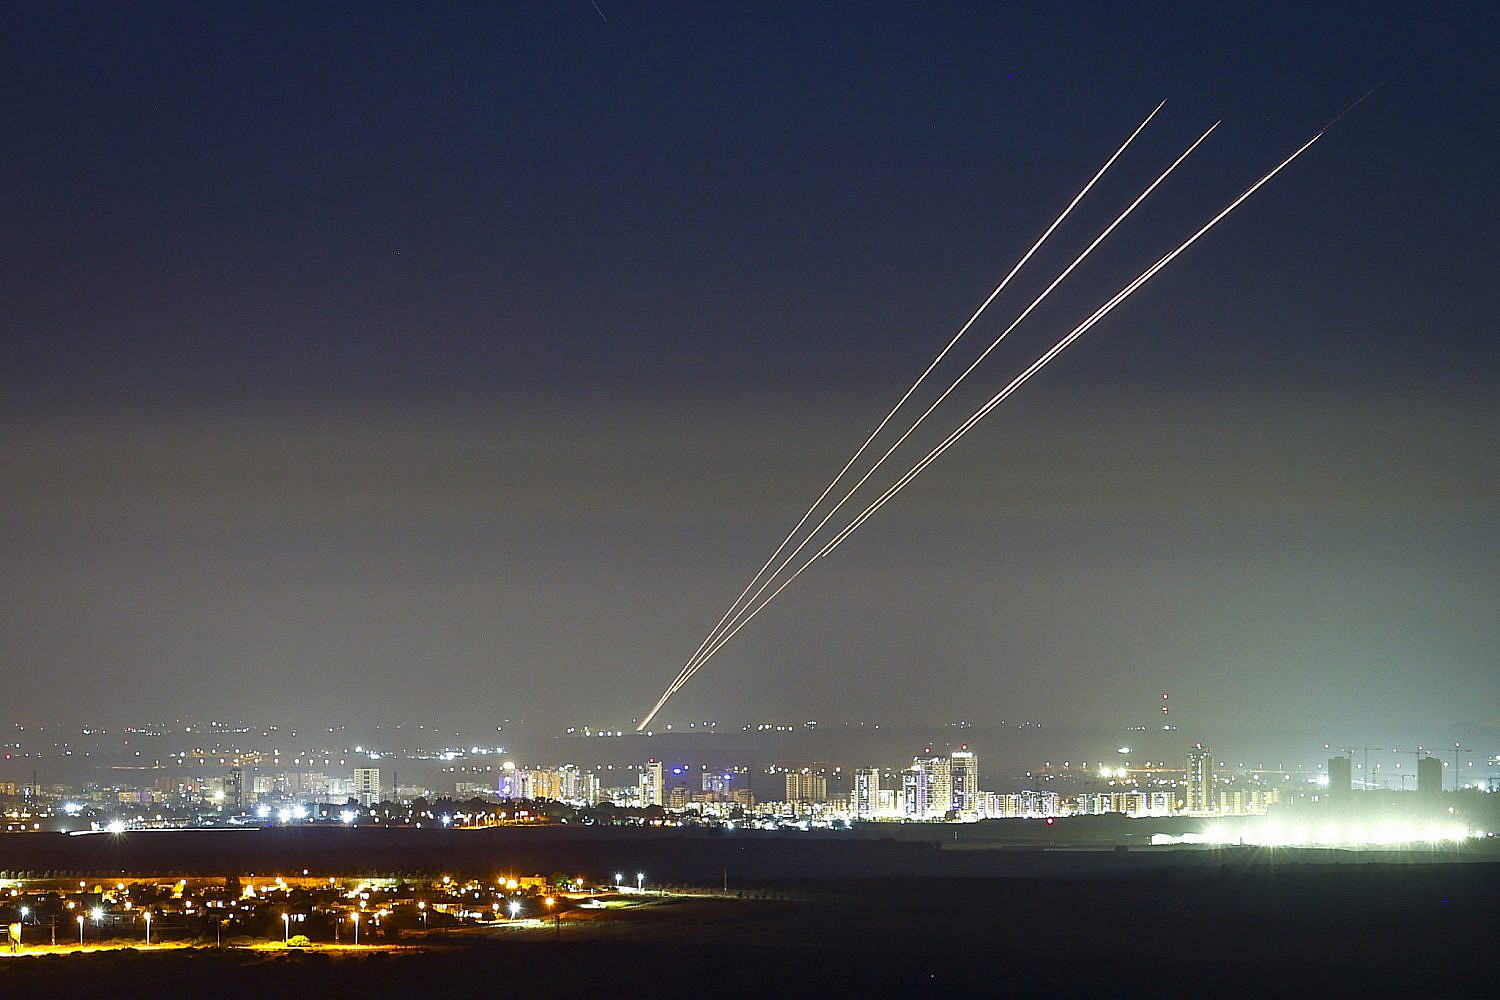 Rockets fired by Hamas militants in Gaza into Israel, seen over the central Israeli town of Kiryat Gat, May 18, 2021. (Nati Shohat/Flash90)